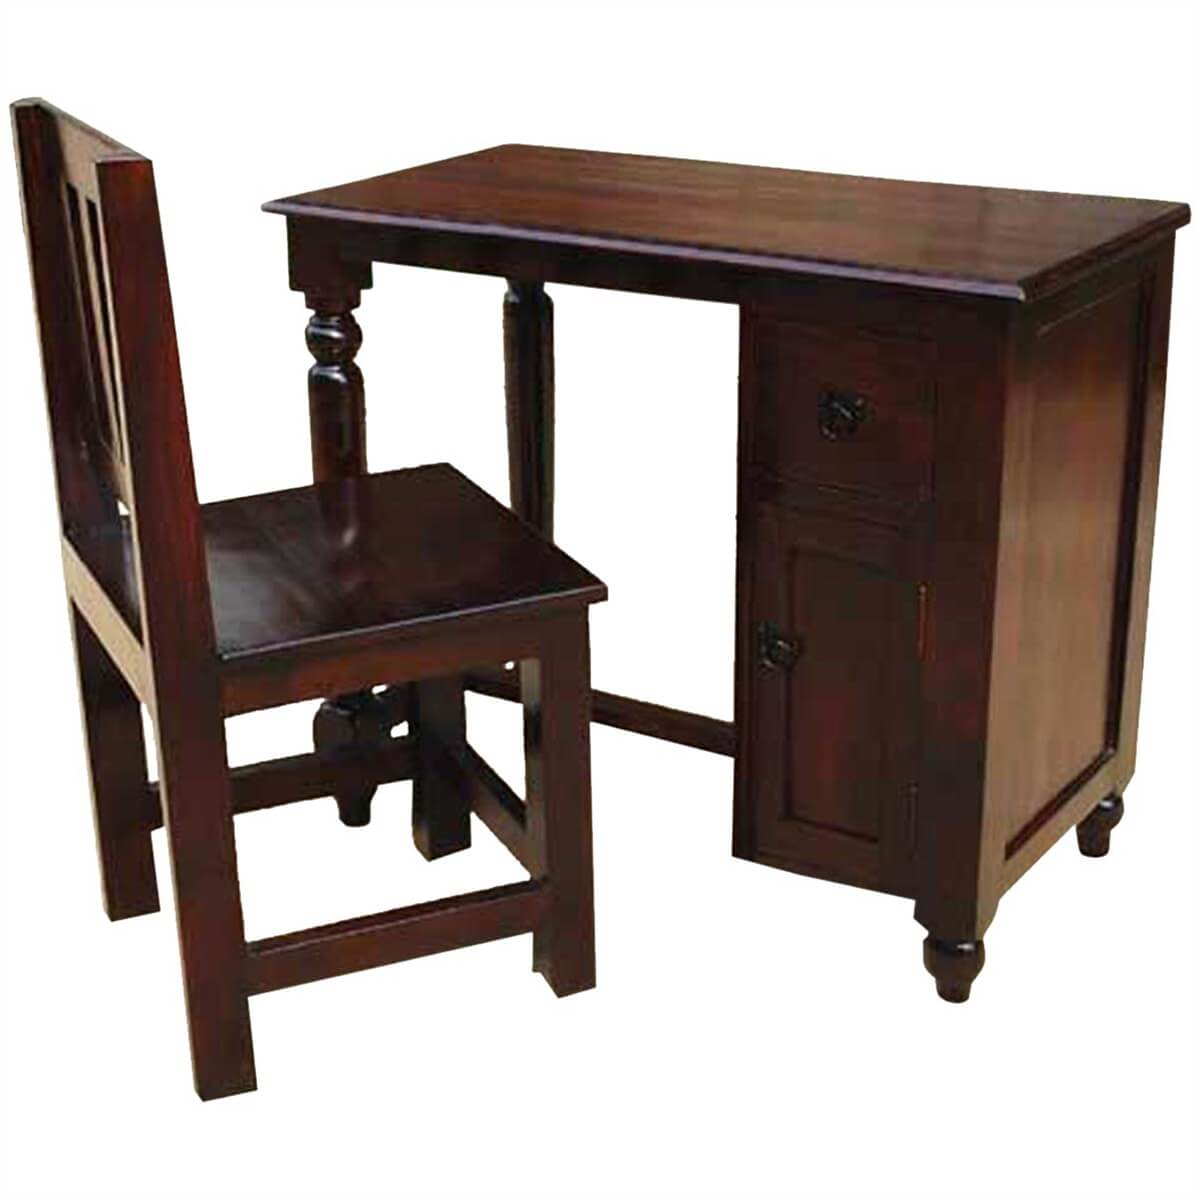 Solid Wood Student Writing Desk Chair Study Table